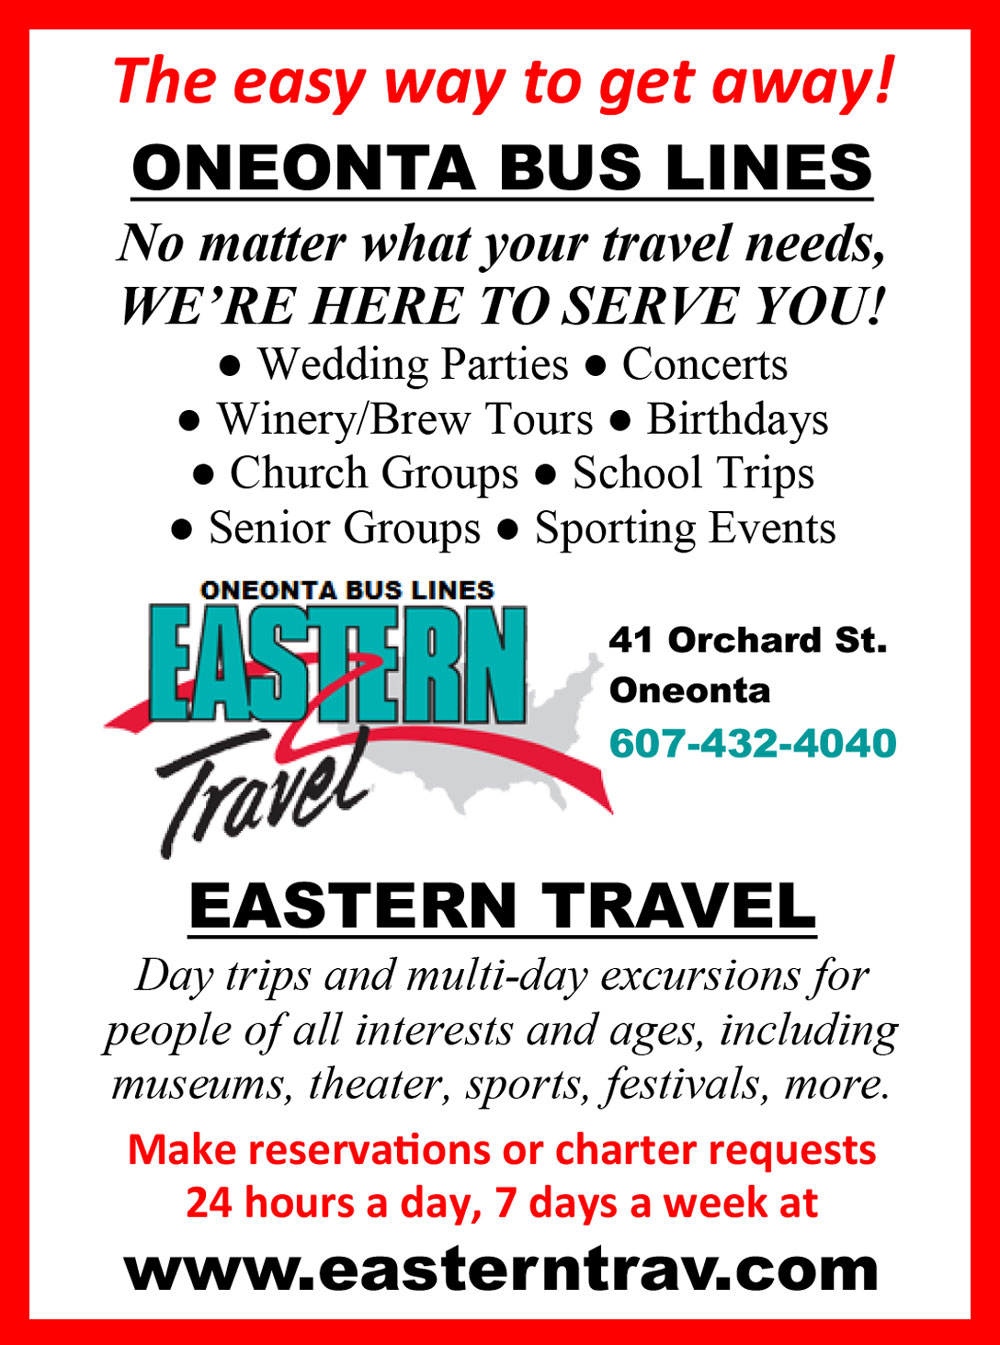 Eastern Travel & Oneonta Bus Lines | Everything Oneonta, NY